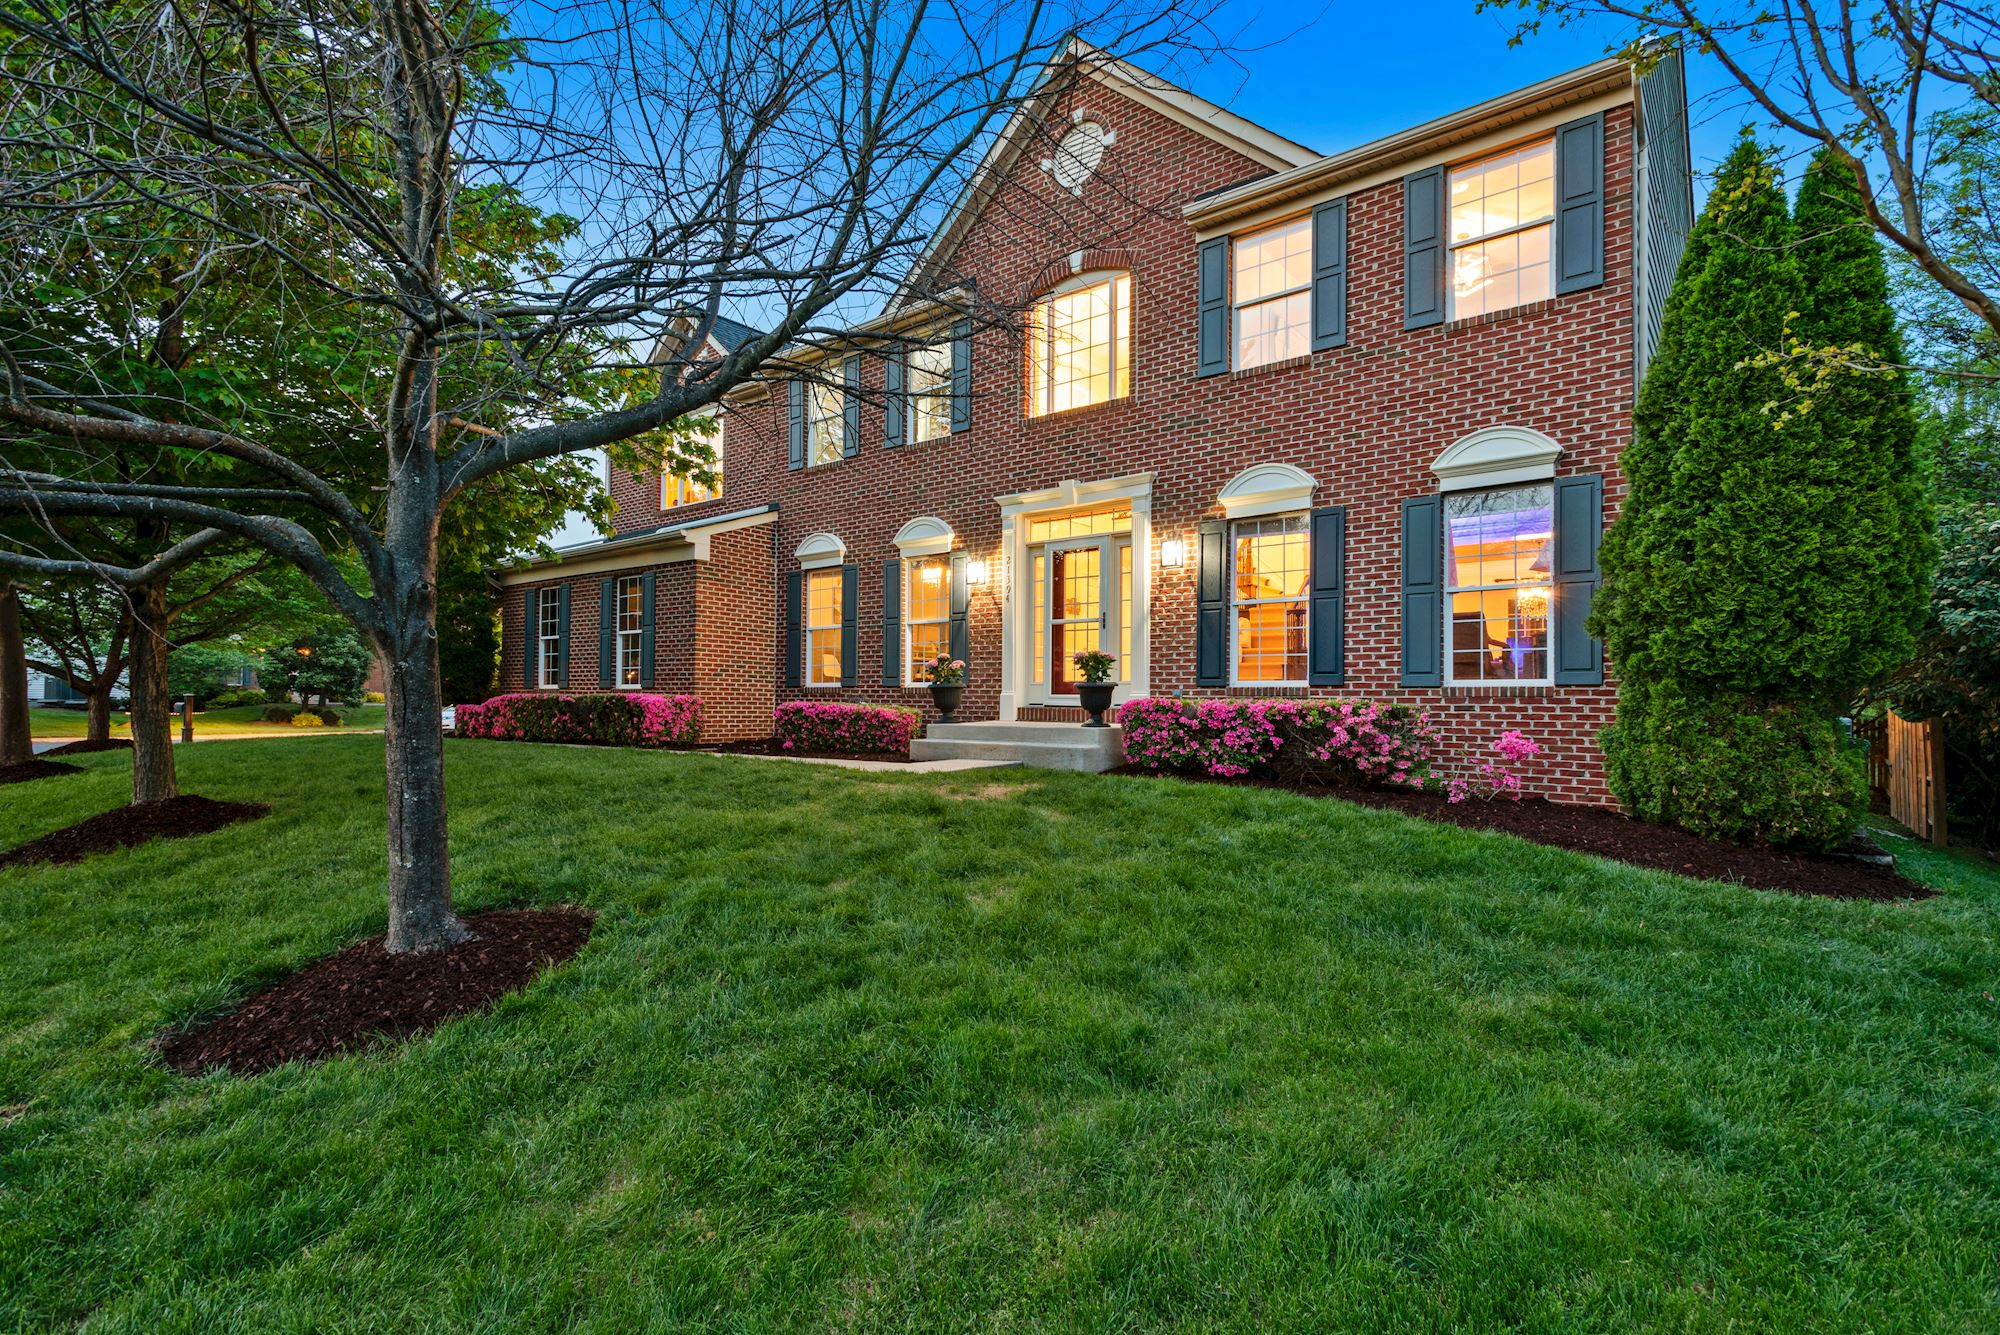 Elegant and Stately 5 Bd Colonial Home in Ashburn,VA